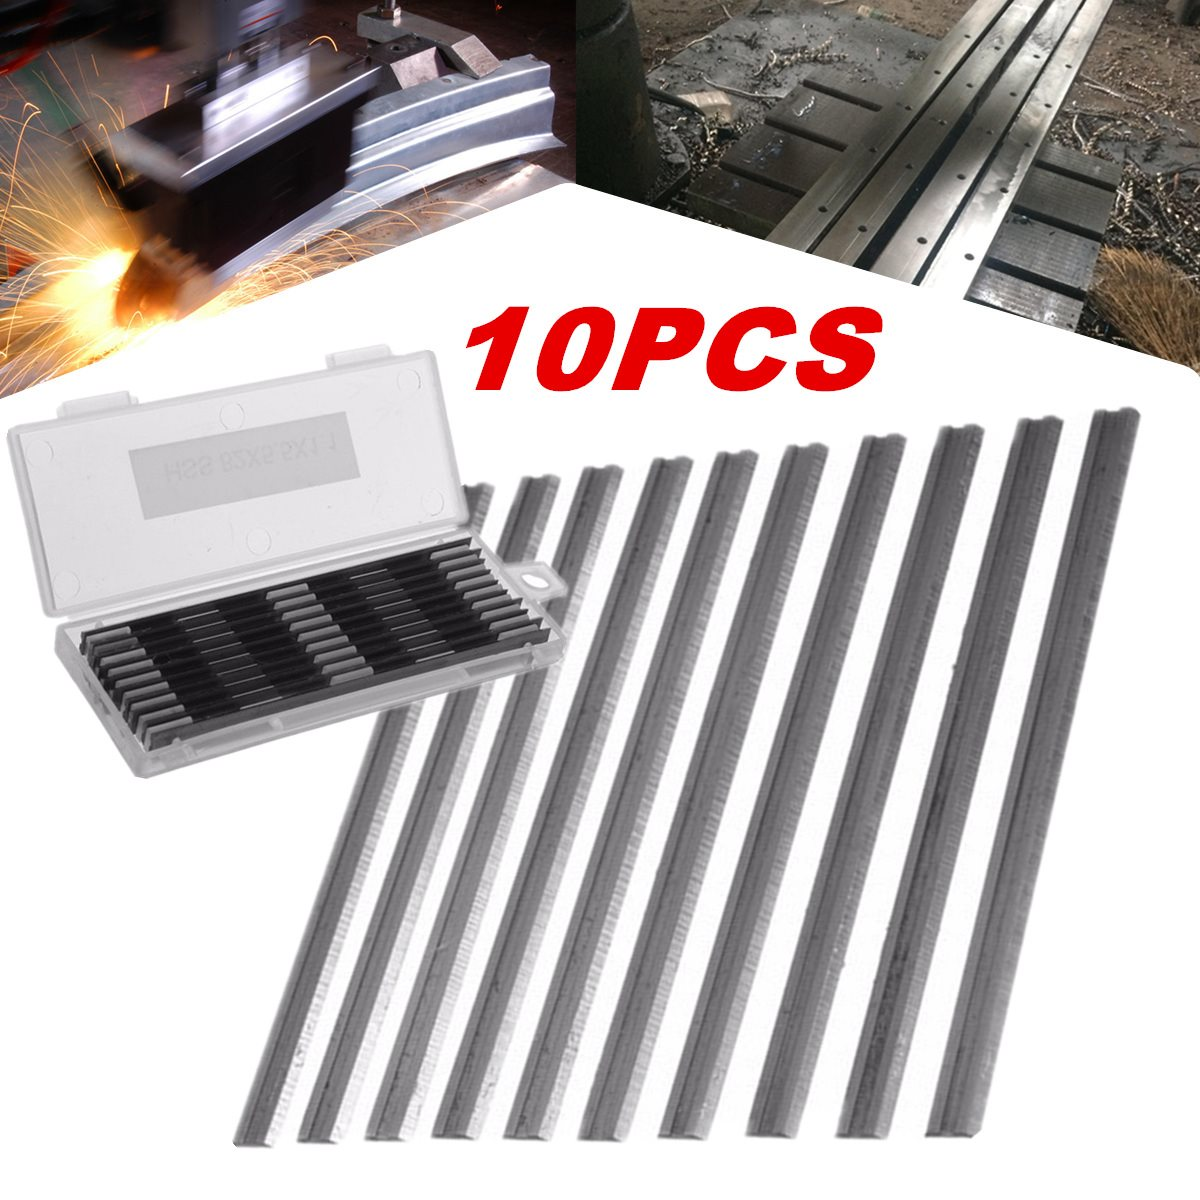 10Pcs 82mm x 5.5mm Reversible Carbide Planer Blades For Cutting Soft Hard Woods Ply-wood Board Woodworking Power Tool10Pcs 82mm x 5.5mm Reversible Carbide Planer Blades For Cutting Soft Hard Woods Ply-wood Board Woodworking Power Tool